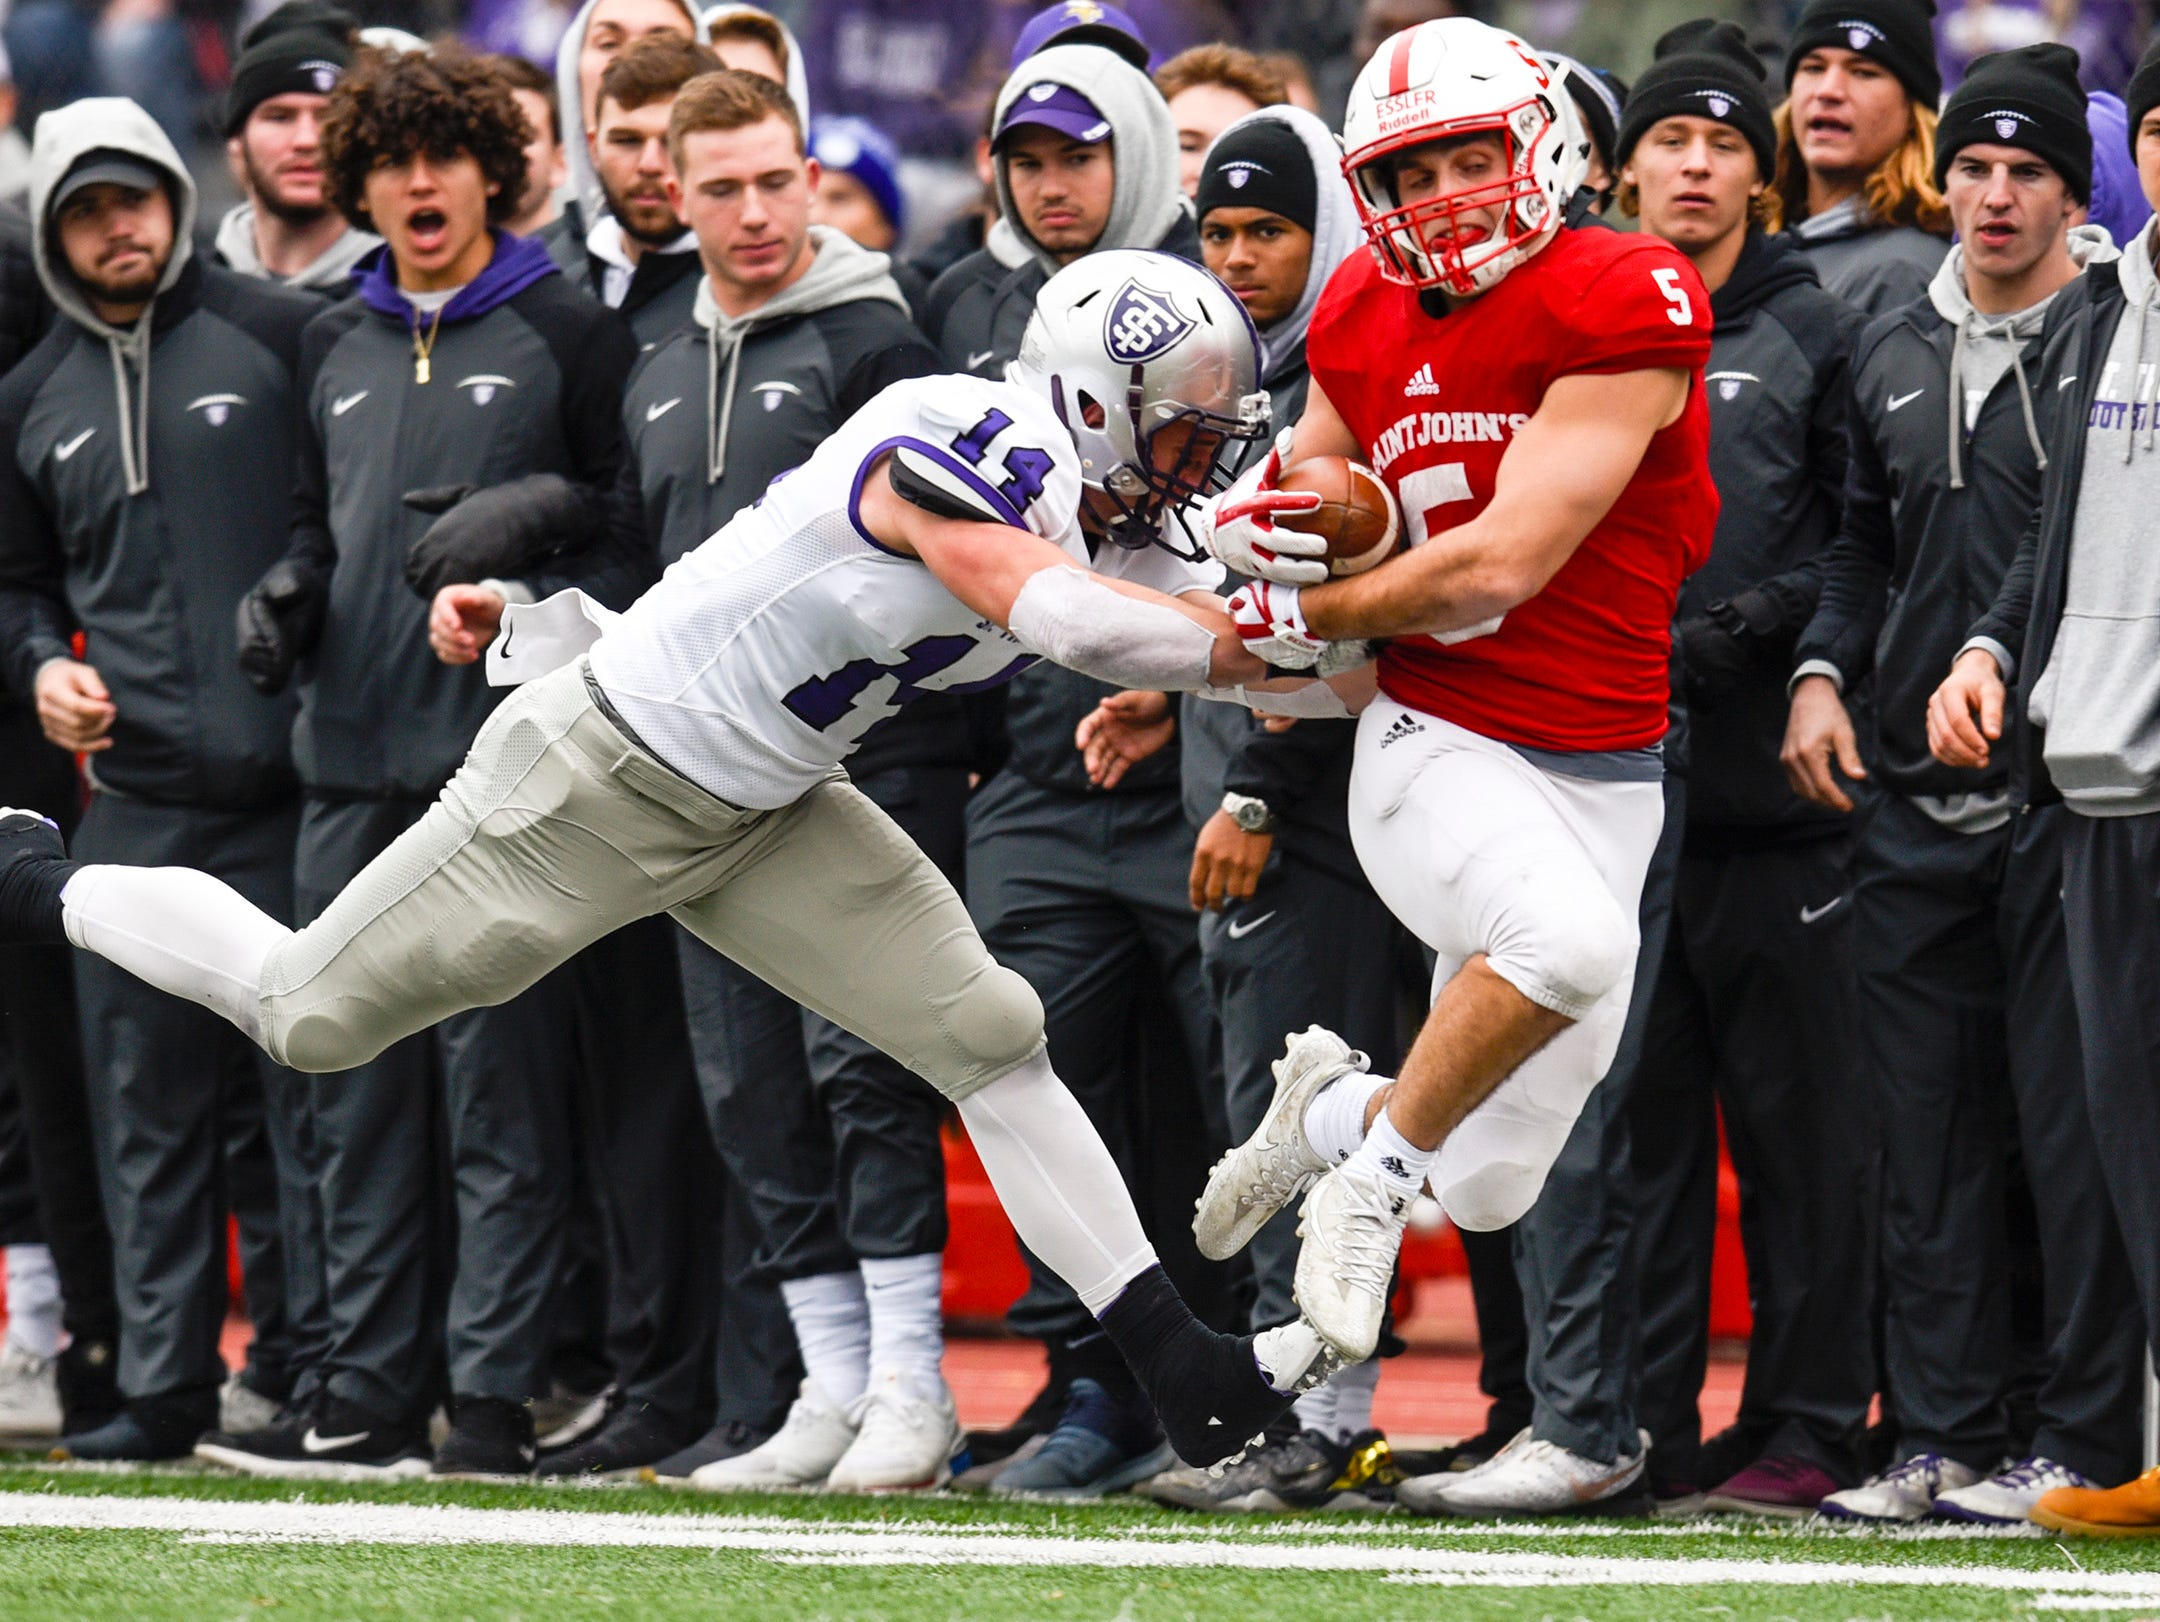 St. John's running back Adam Essler fights to stay in bounds on a run against St. Thomas during the first half Saturday, Oct. 13, in Collegeville.